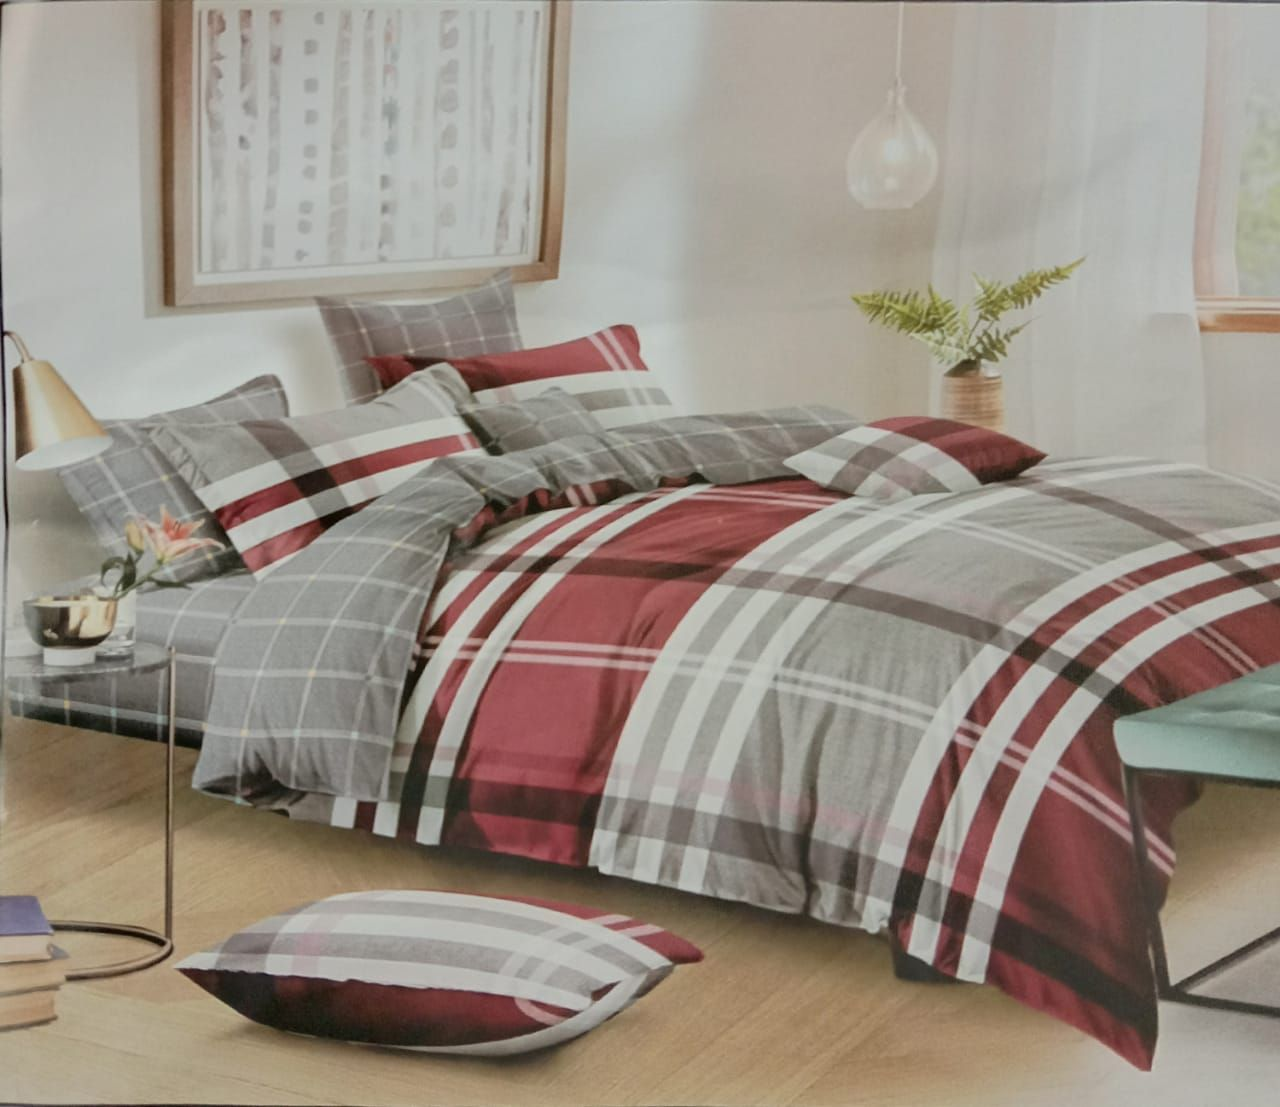 Theexportworld Com Is Wholesale Comforter Sets Manufacturer In